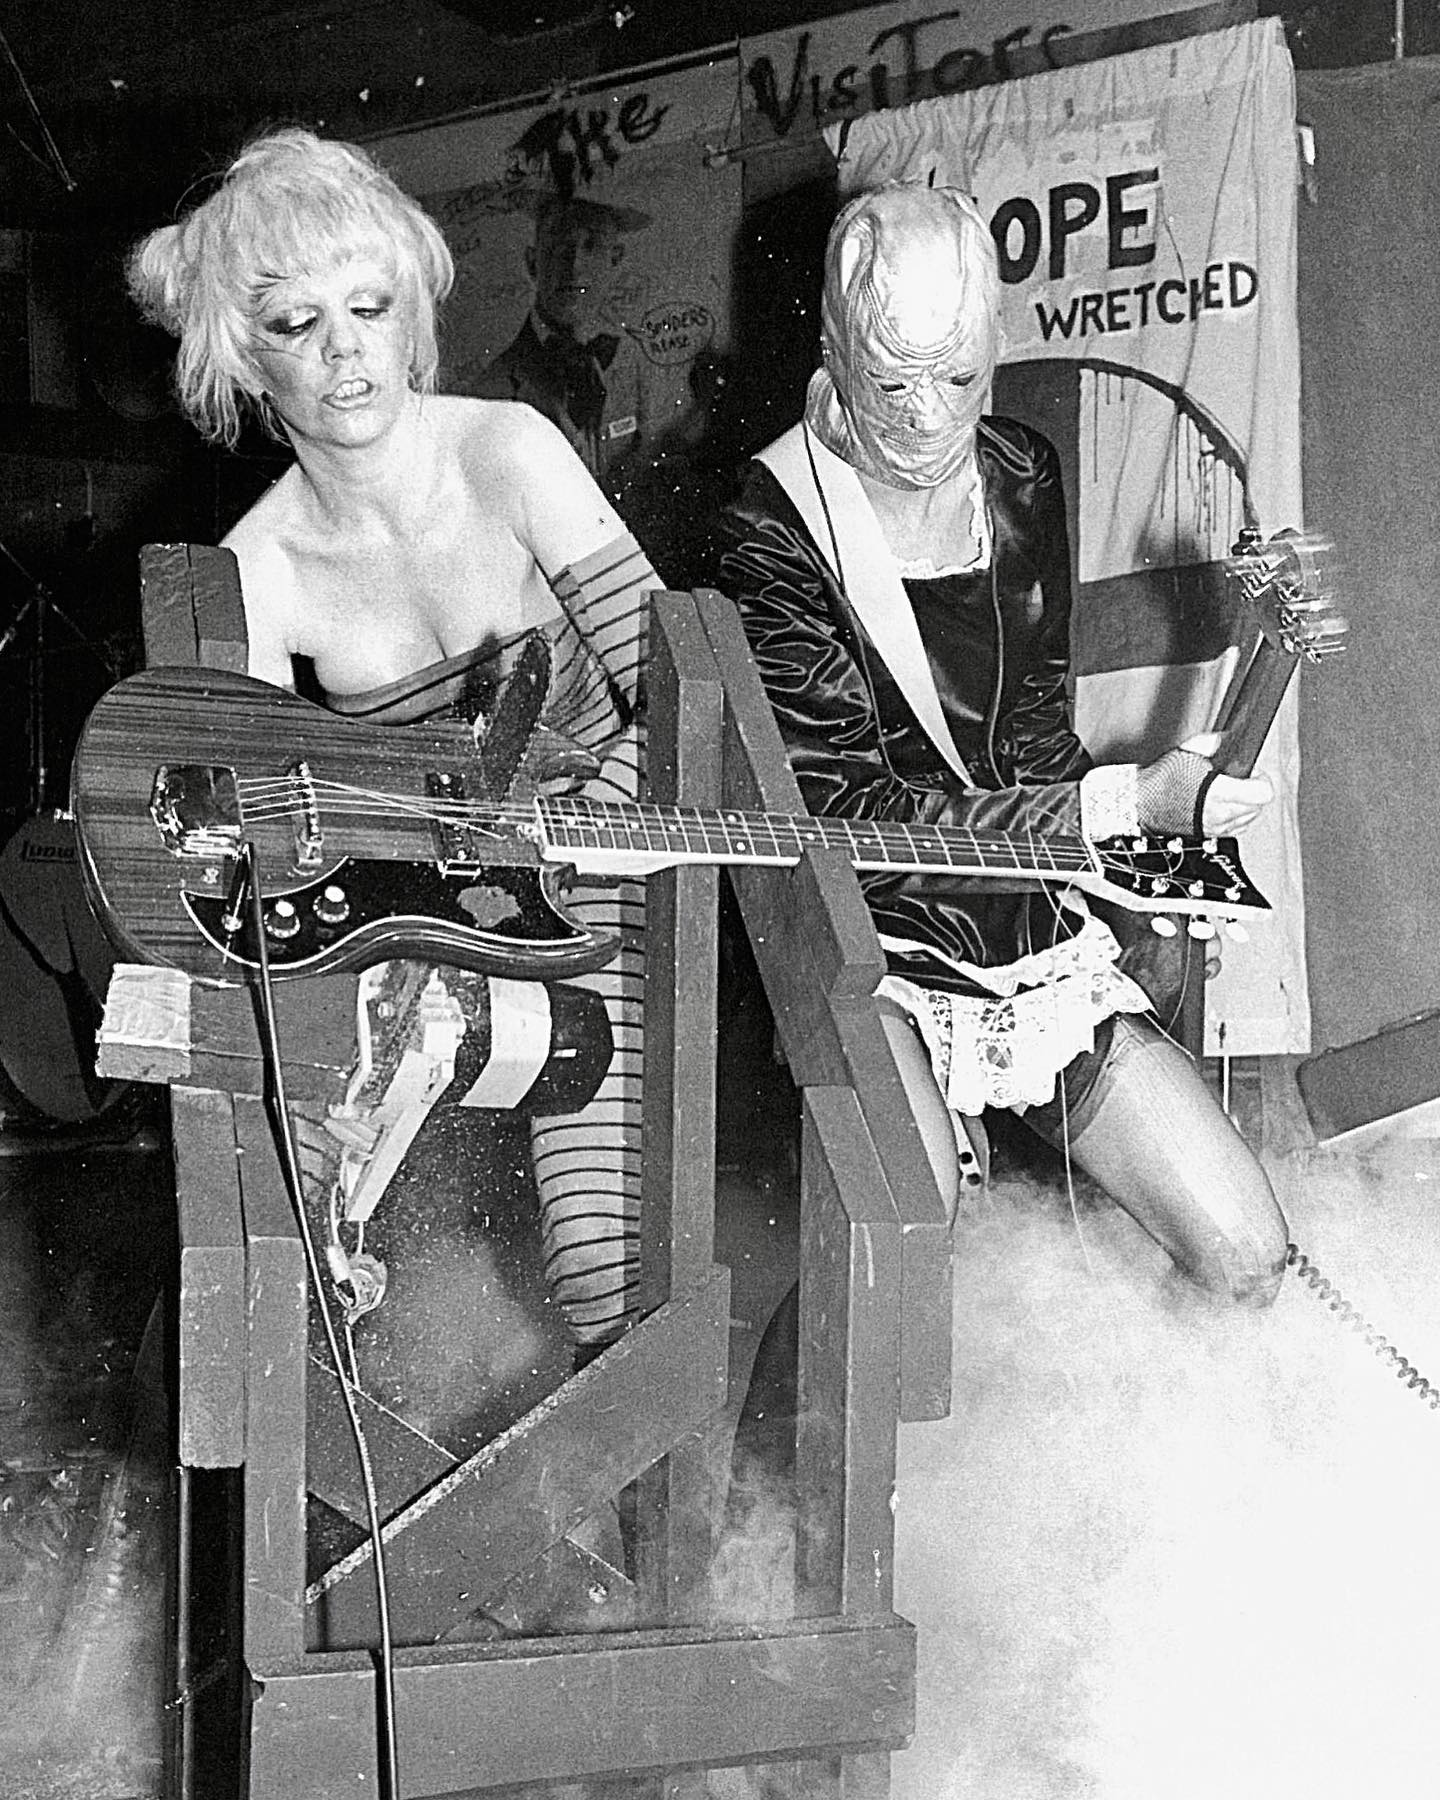 """Happy birthday Wendy O. Williams! Born in 1949, this wild songstress of punk band The Plasmatics would have been 72 years old today.  Even before punk fame, Williams had a remarkable path. By all accounts a quiet, sweet girl with decent grades, she decided to hitchhike to Colorado at age 16. She then traveled to Florida and Europe on a string of odd jobs that included lifeguarding, stripping, and serving at Dunkin Donuts. In New York in the late 70s, she was taking part in sex shows before being recruited to the Plasmatics, which gained acclaim in the underground punk scene, making their debut at CBGB in 1978. Williams' performances were not just musical, but were extreme performances which included exploding equipment, firing of a shotgun, nudity, and taking a chainsaw to a guitar - the last of which was captured here by Allan Tannenbaum!  After 3 albums with the Plasmatics, Williams went solo. She first released the duet """"Stand by Your Man"""" with Lemmy Kilmister of Motörhead in 1982. She then went on to release her debut album W.O.W. in 1984, produced by Gene Simmons and backed by other members of KISS . After two more albums and a few movie and TV roles (not to mention a run in The Rocky Horror Show) she retired from music in 1991. She moved to Connecticut with former manager Rod Swenson and became a wildlife rehabilitator, also working at a food co-op. She died of by suicide in 1998 at age 48.   📸 © Allan Tannenbaum/MUUS Collection"""